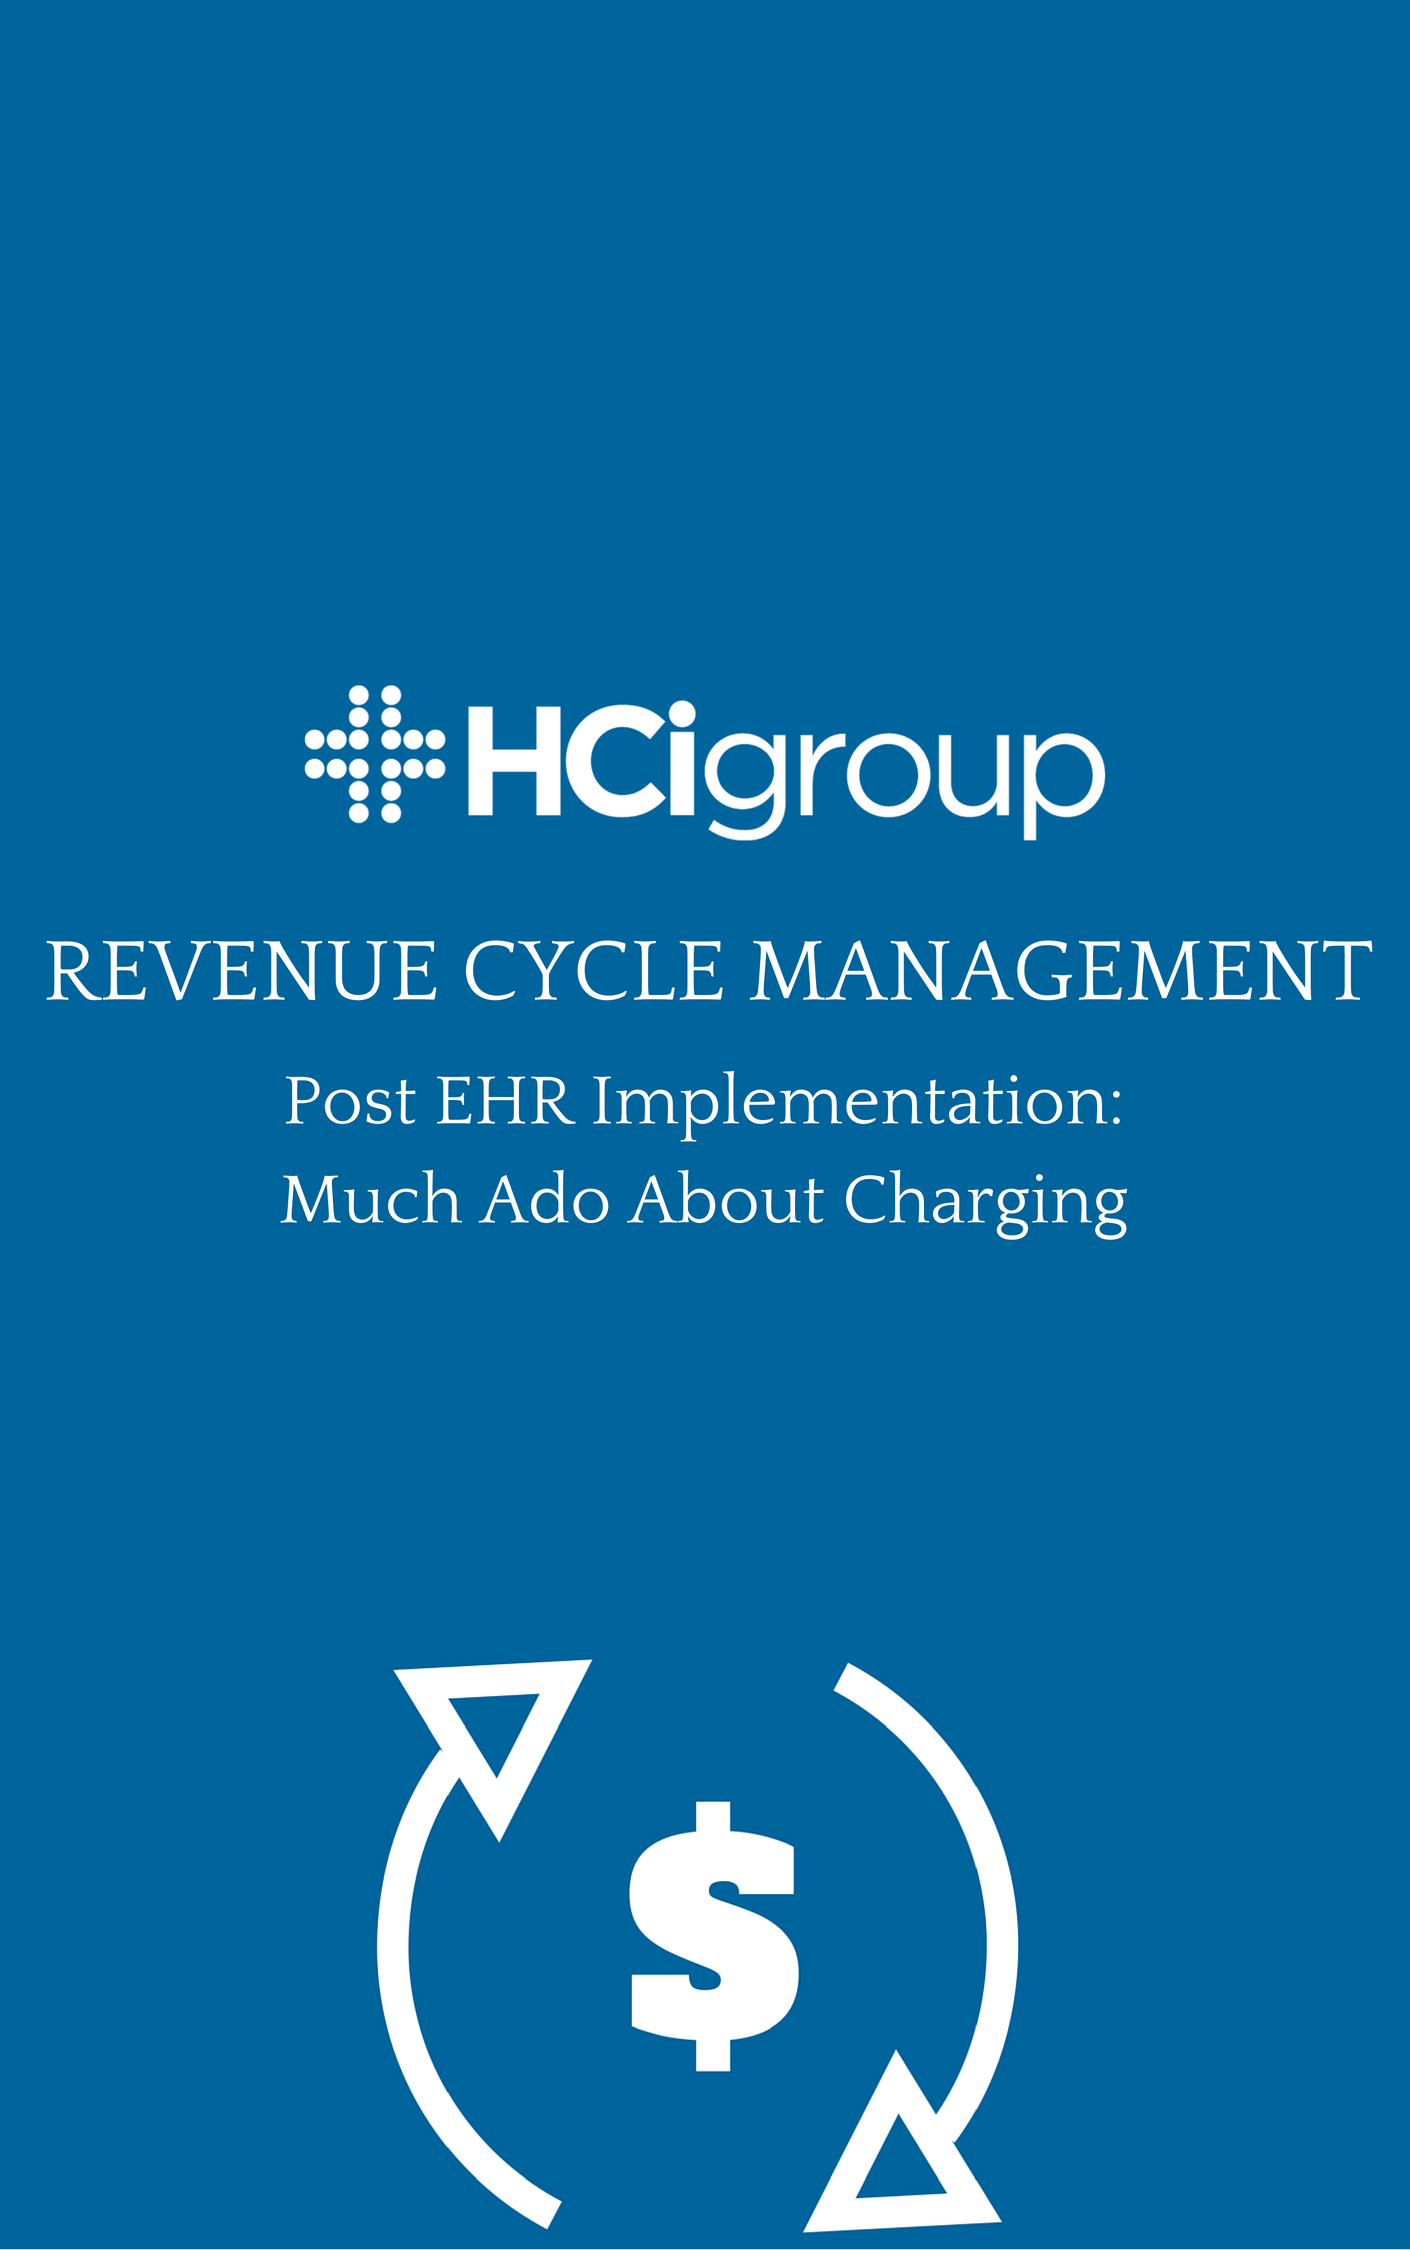 Revenue Cycle Management Post EHR Implementation: Much Ado About Charging